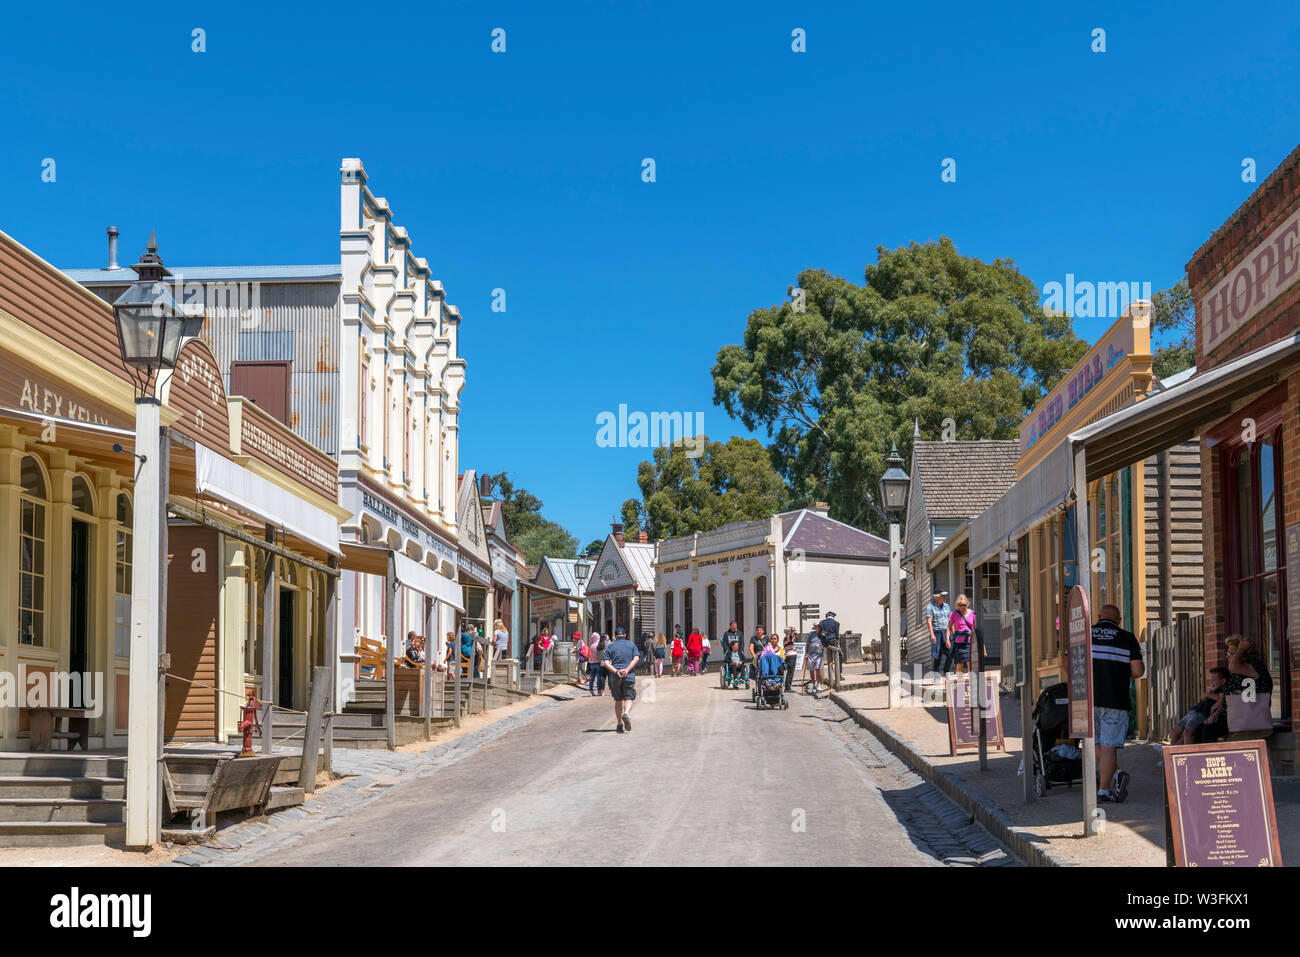 Main Street in Sovereign Hill, an open air museum in the old gold mining town of Ballarat, Victoria, Australia - Stock Image